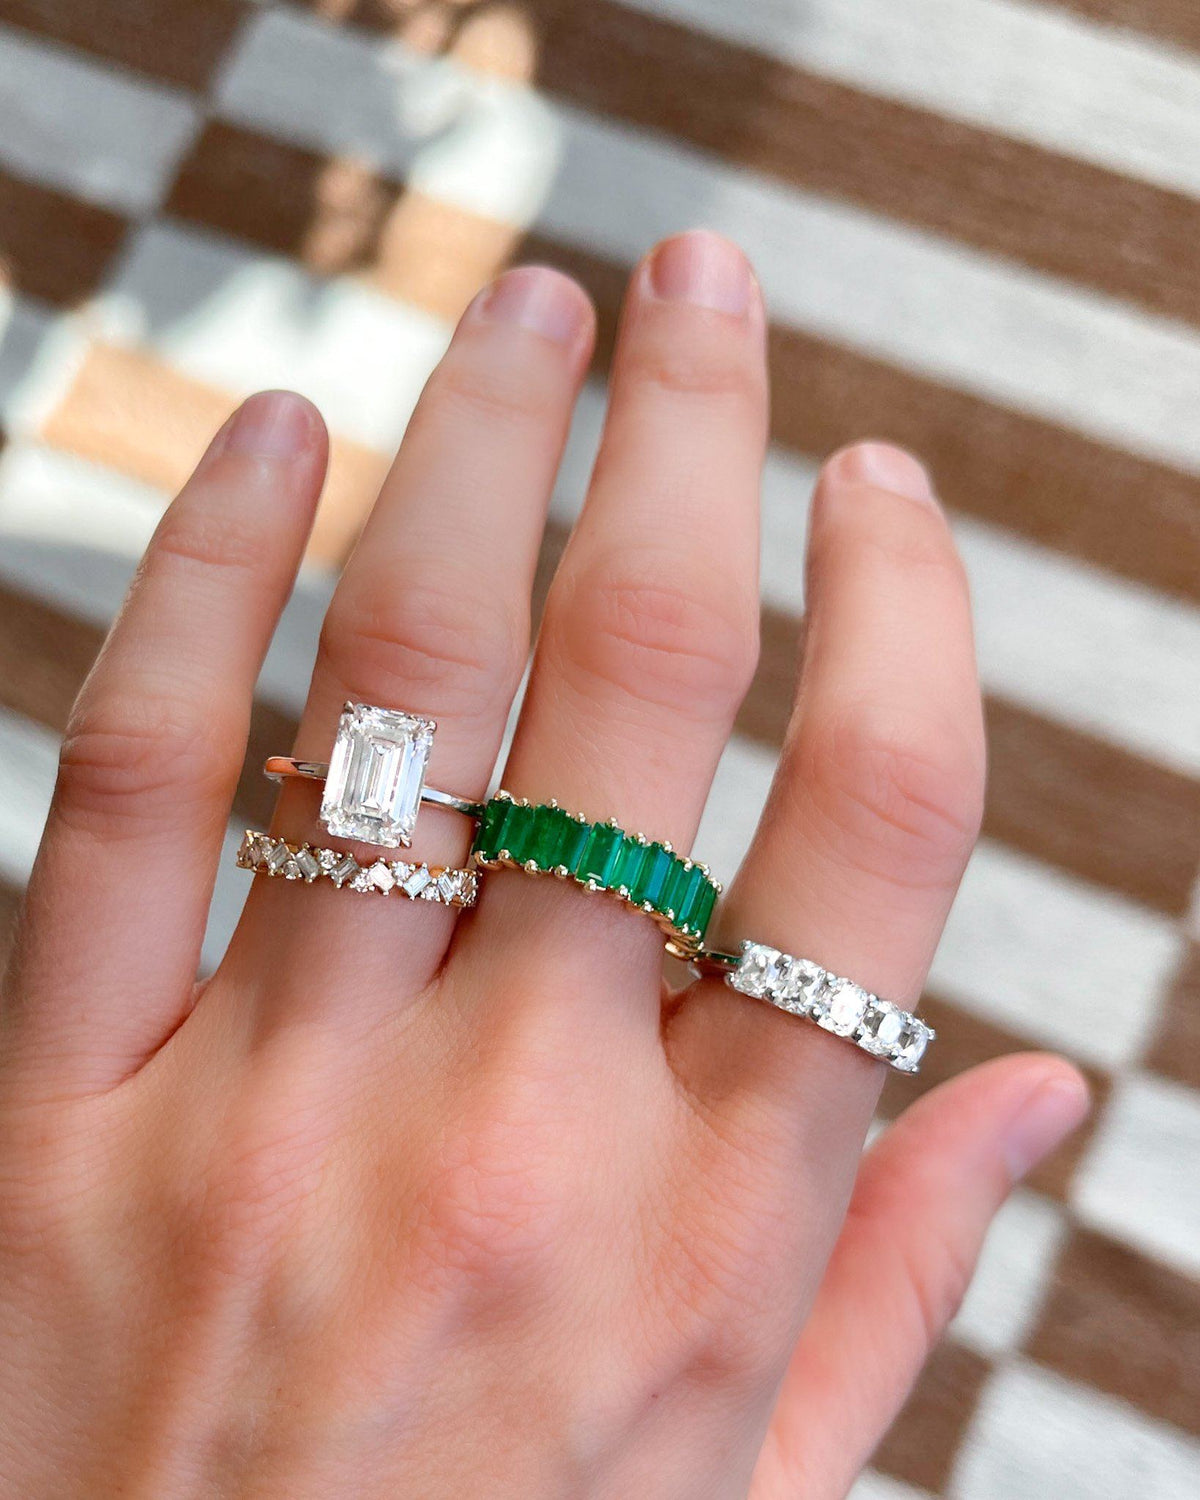 Green Emerald Baguette Stackable Ring available in Gold and Platinum By Good Stone